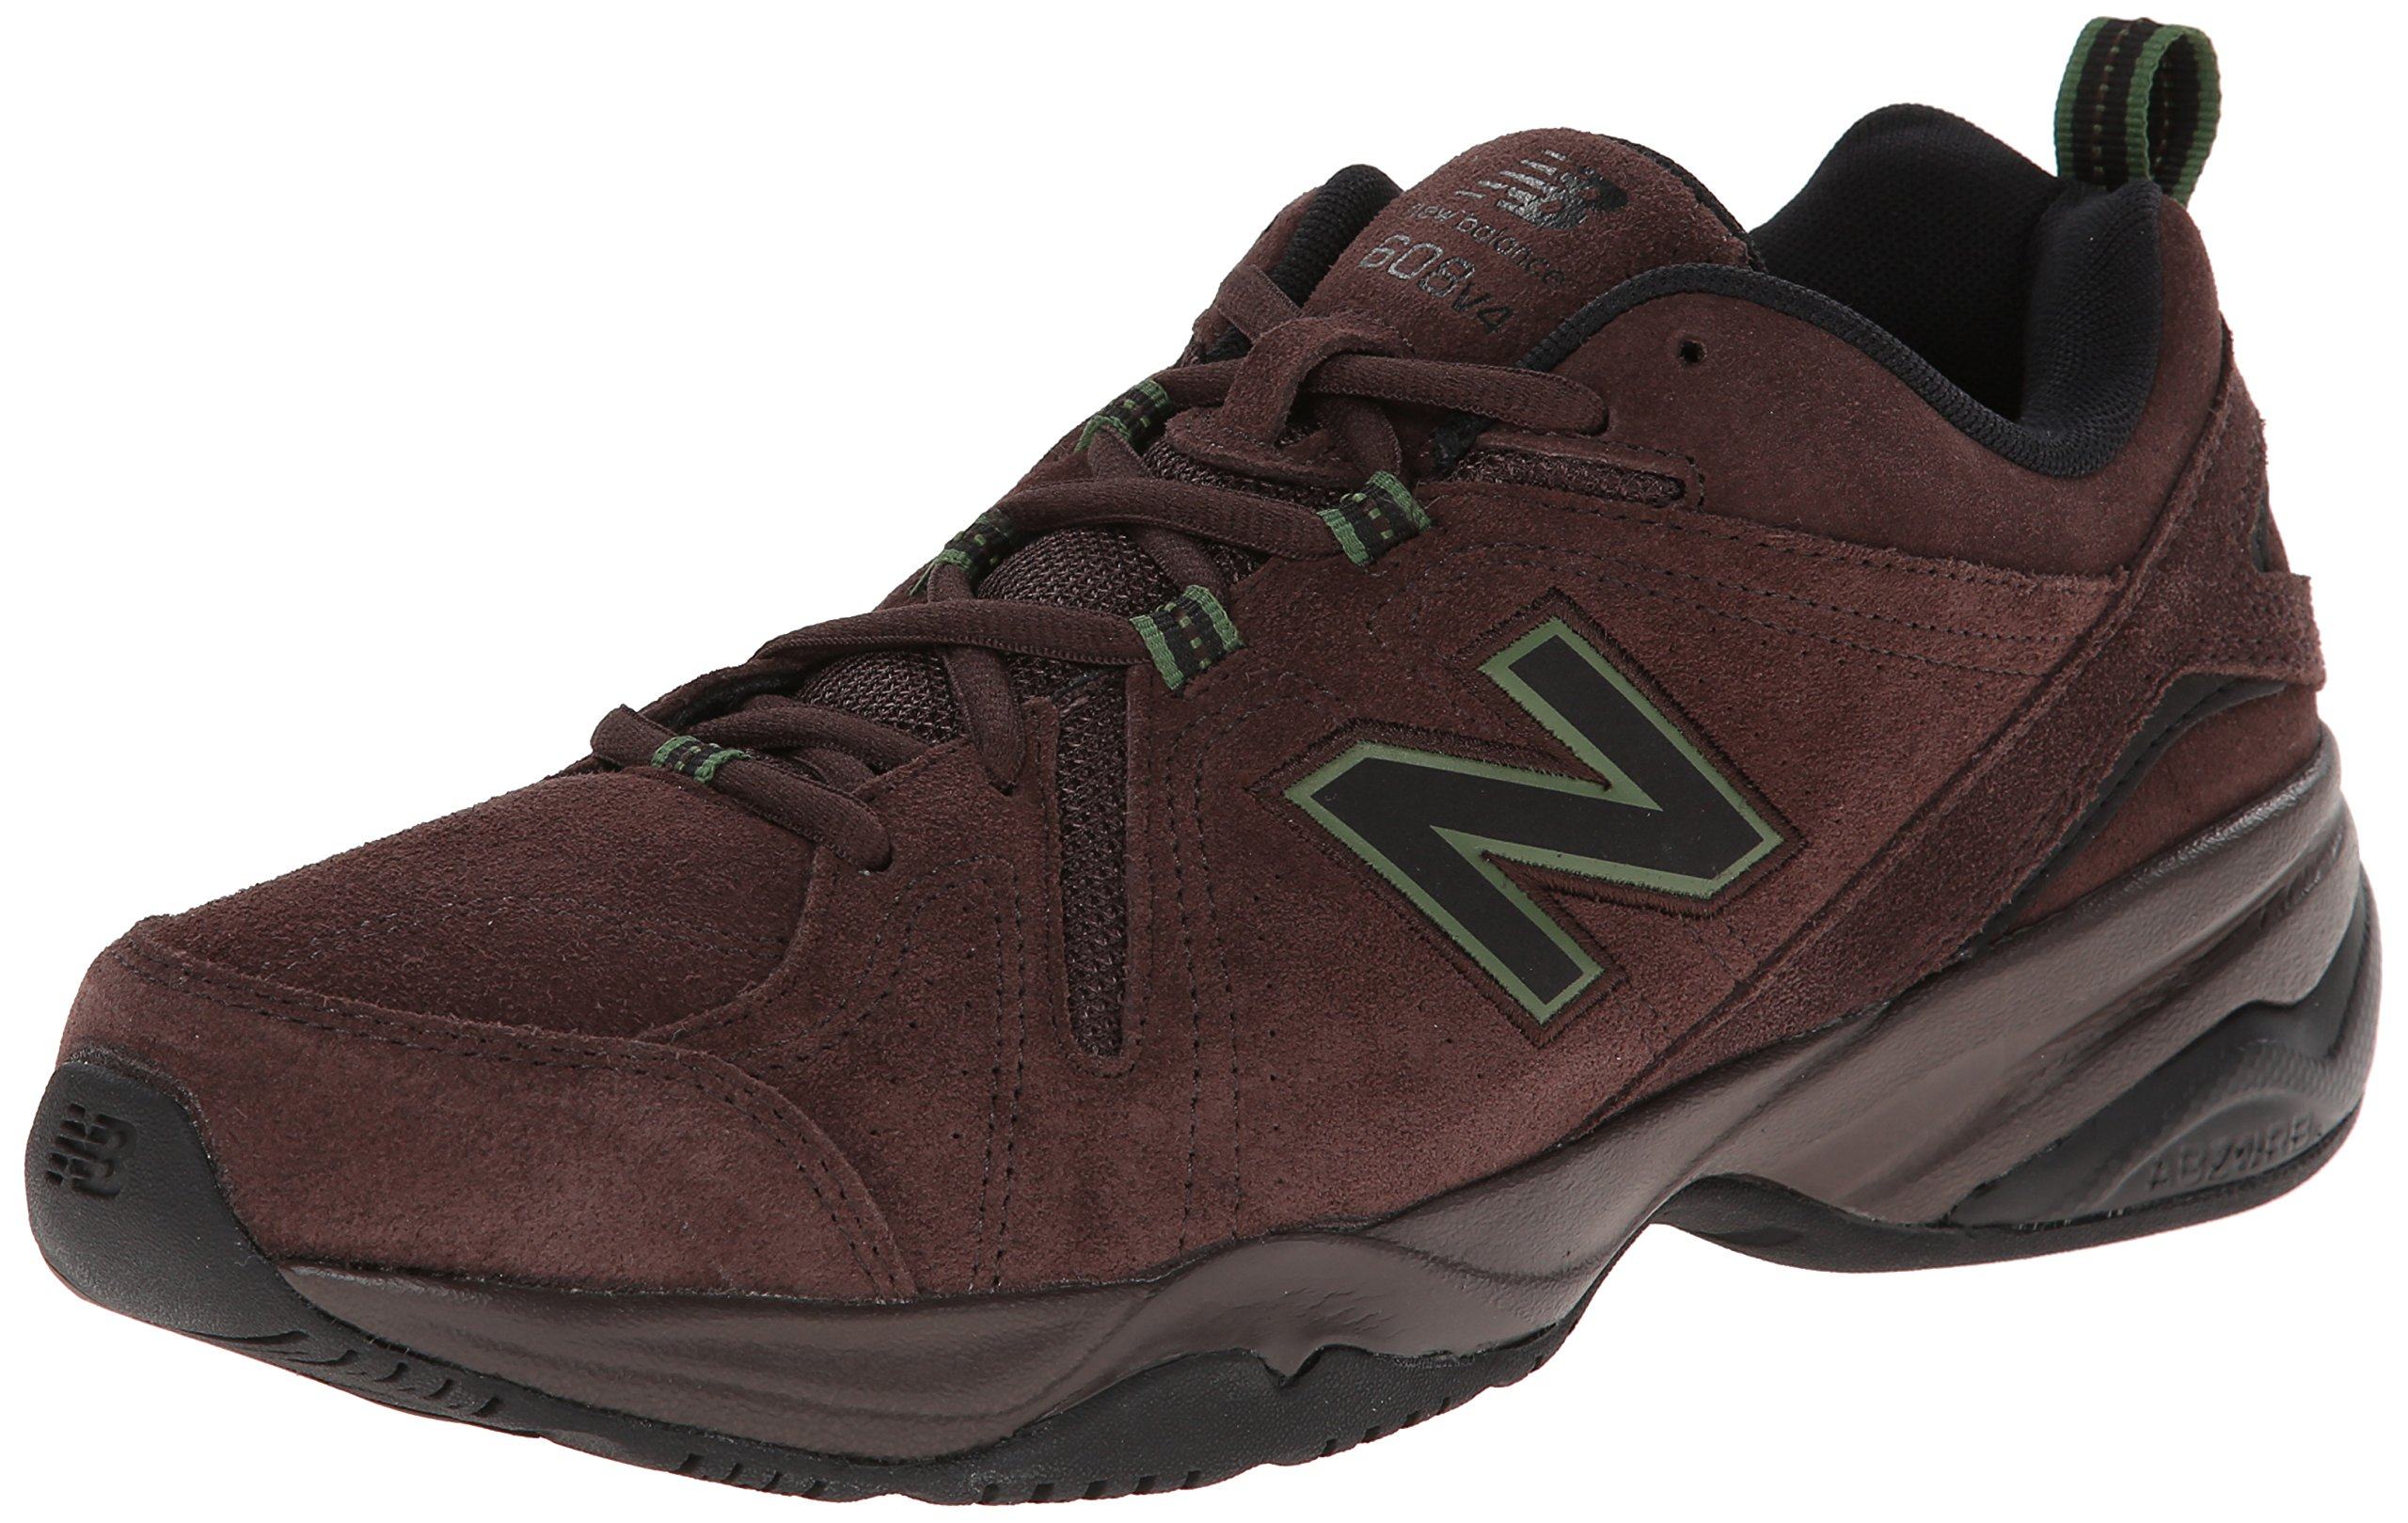 New Balance Men's MX608v4 Training Shoe, Brown, 6.5 4E US by New Balance (Image #1)